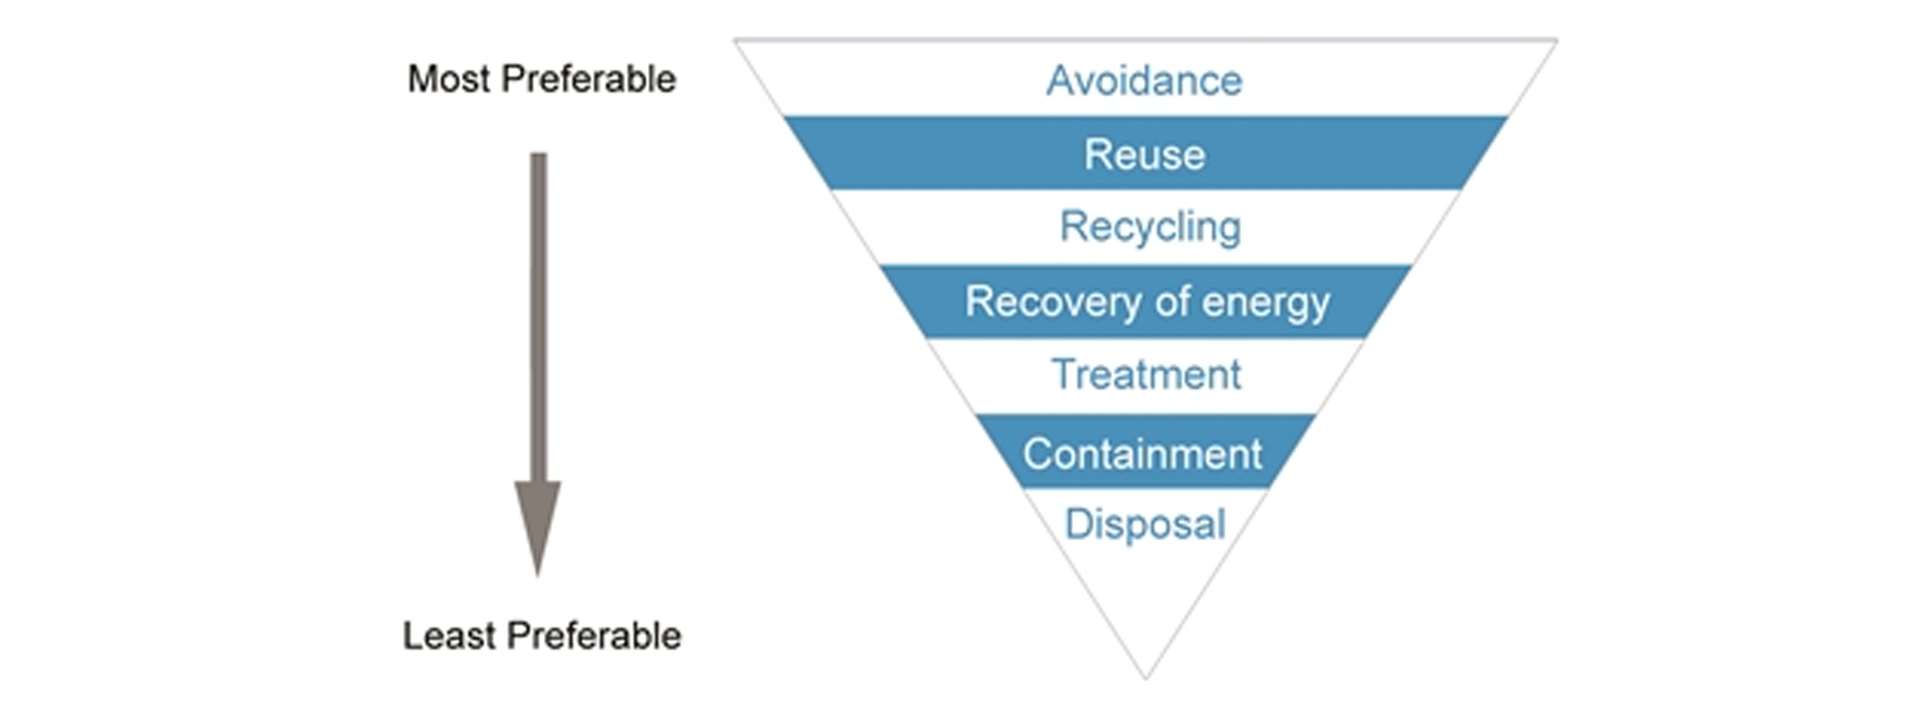 Graphic showing the EPA Victoria Waste Management Hierarchy. The upside down triangle indicates how waste should be managed from most preferable to least preferable. In order of preference there are: avoidance, reuse, recycling, recovery of energy, treatment, containment, disposal